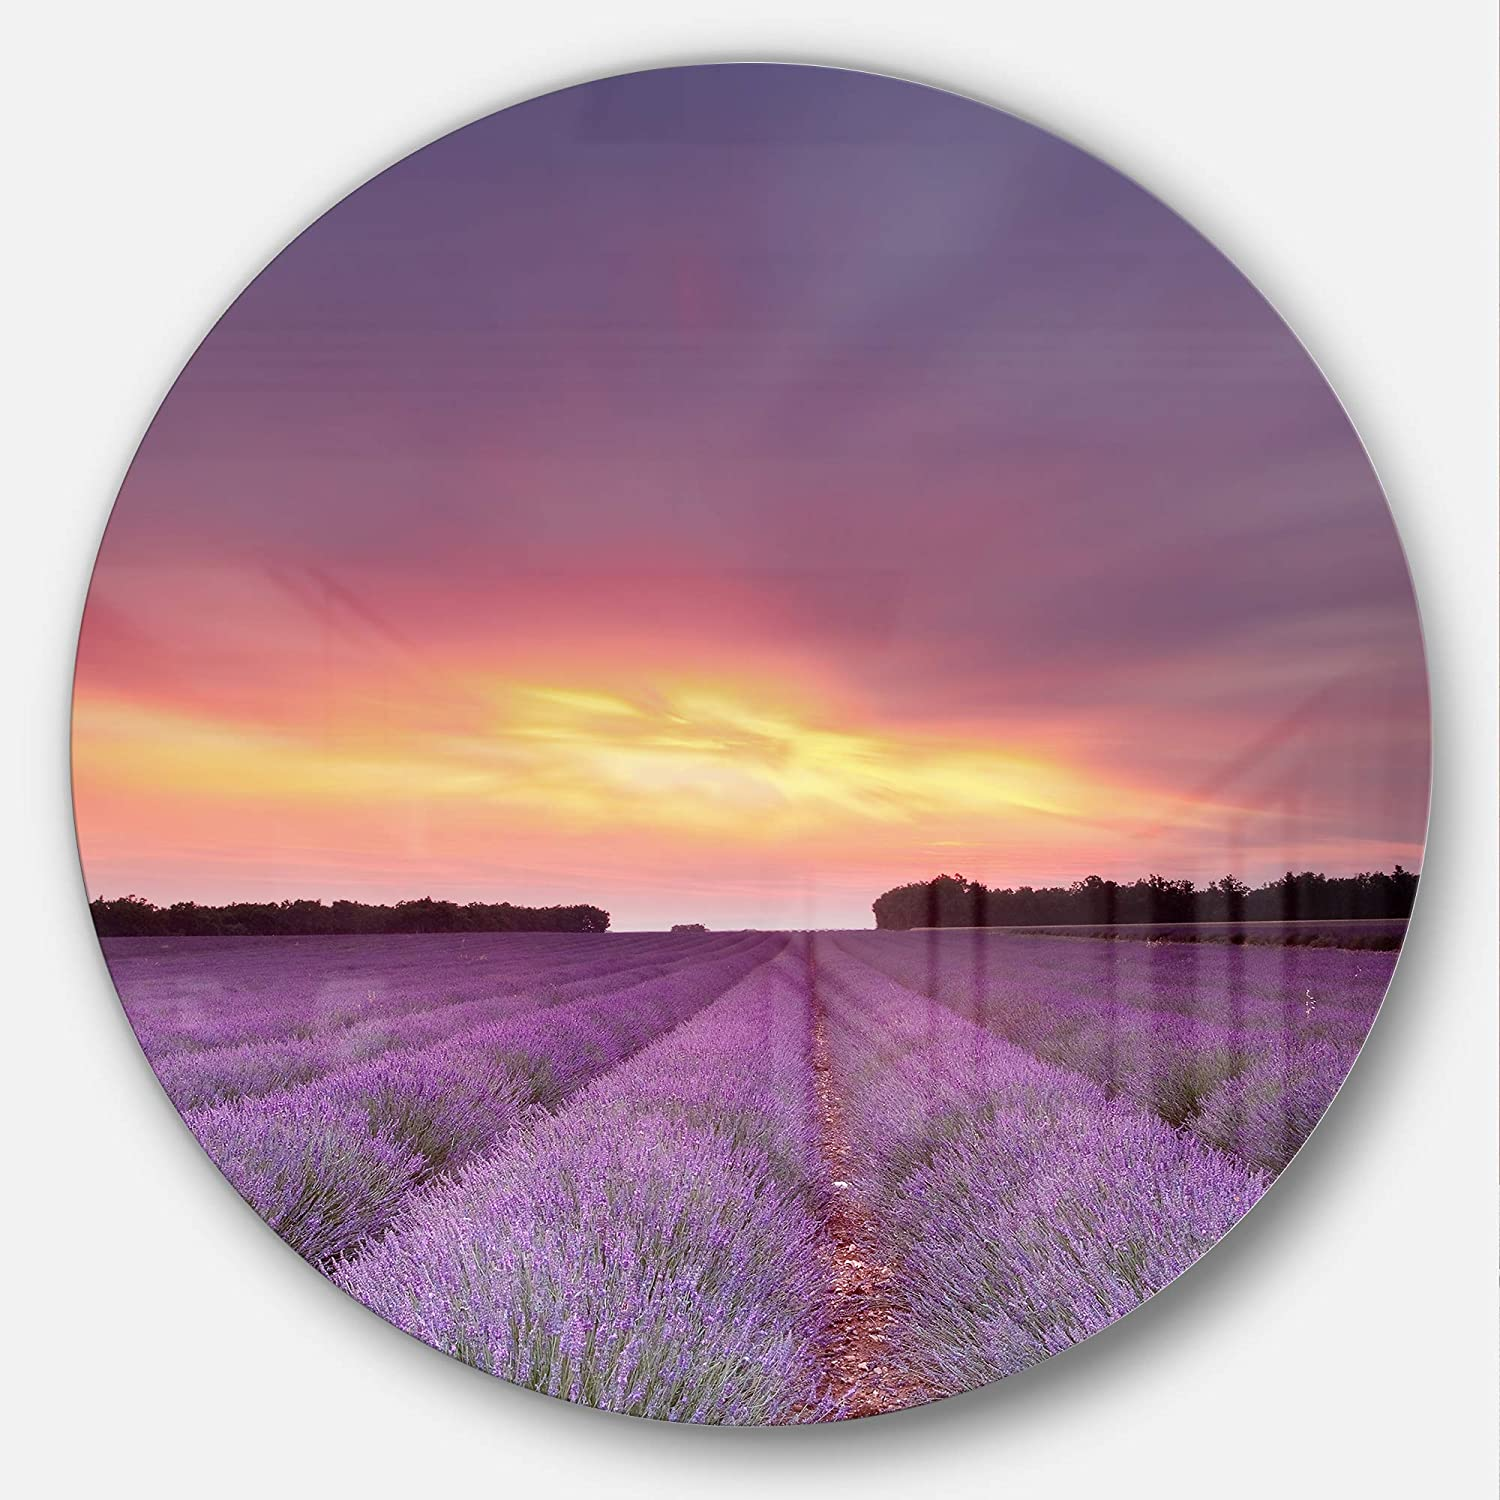 Designart MT13079C11 Beautiful Sunset Over Lavender Rows Landscape Metal Artwork, Purple, 11  x 11